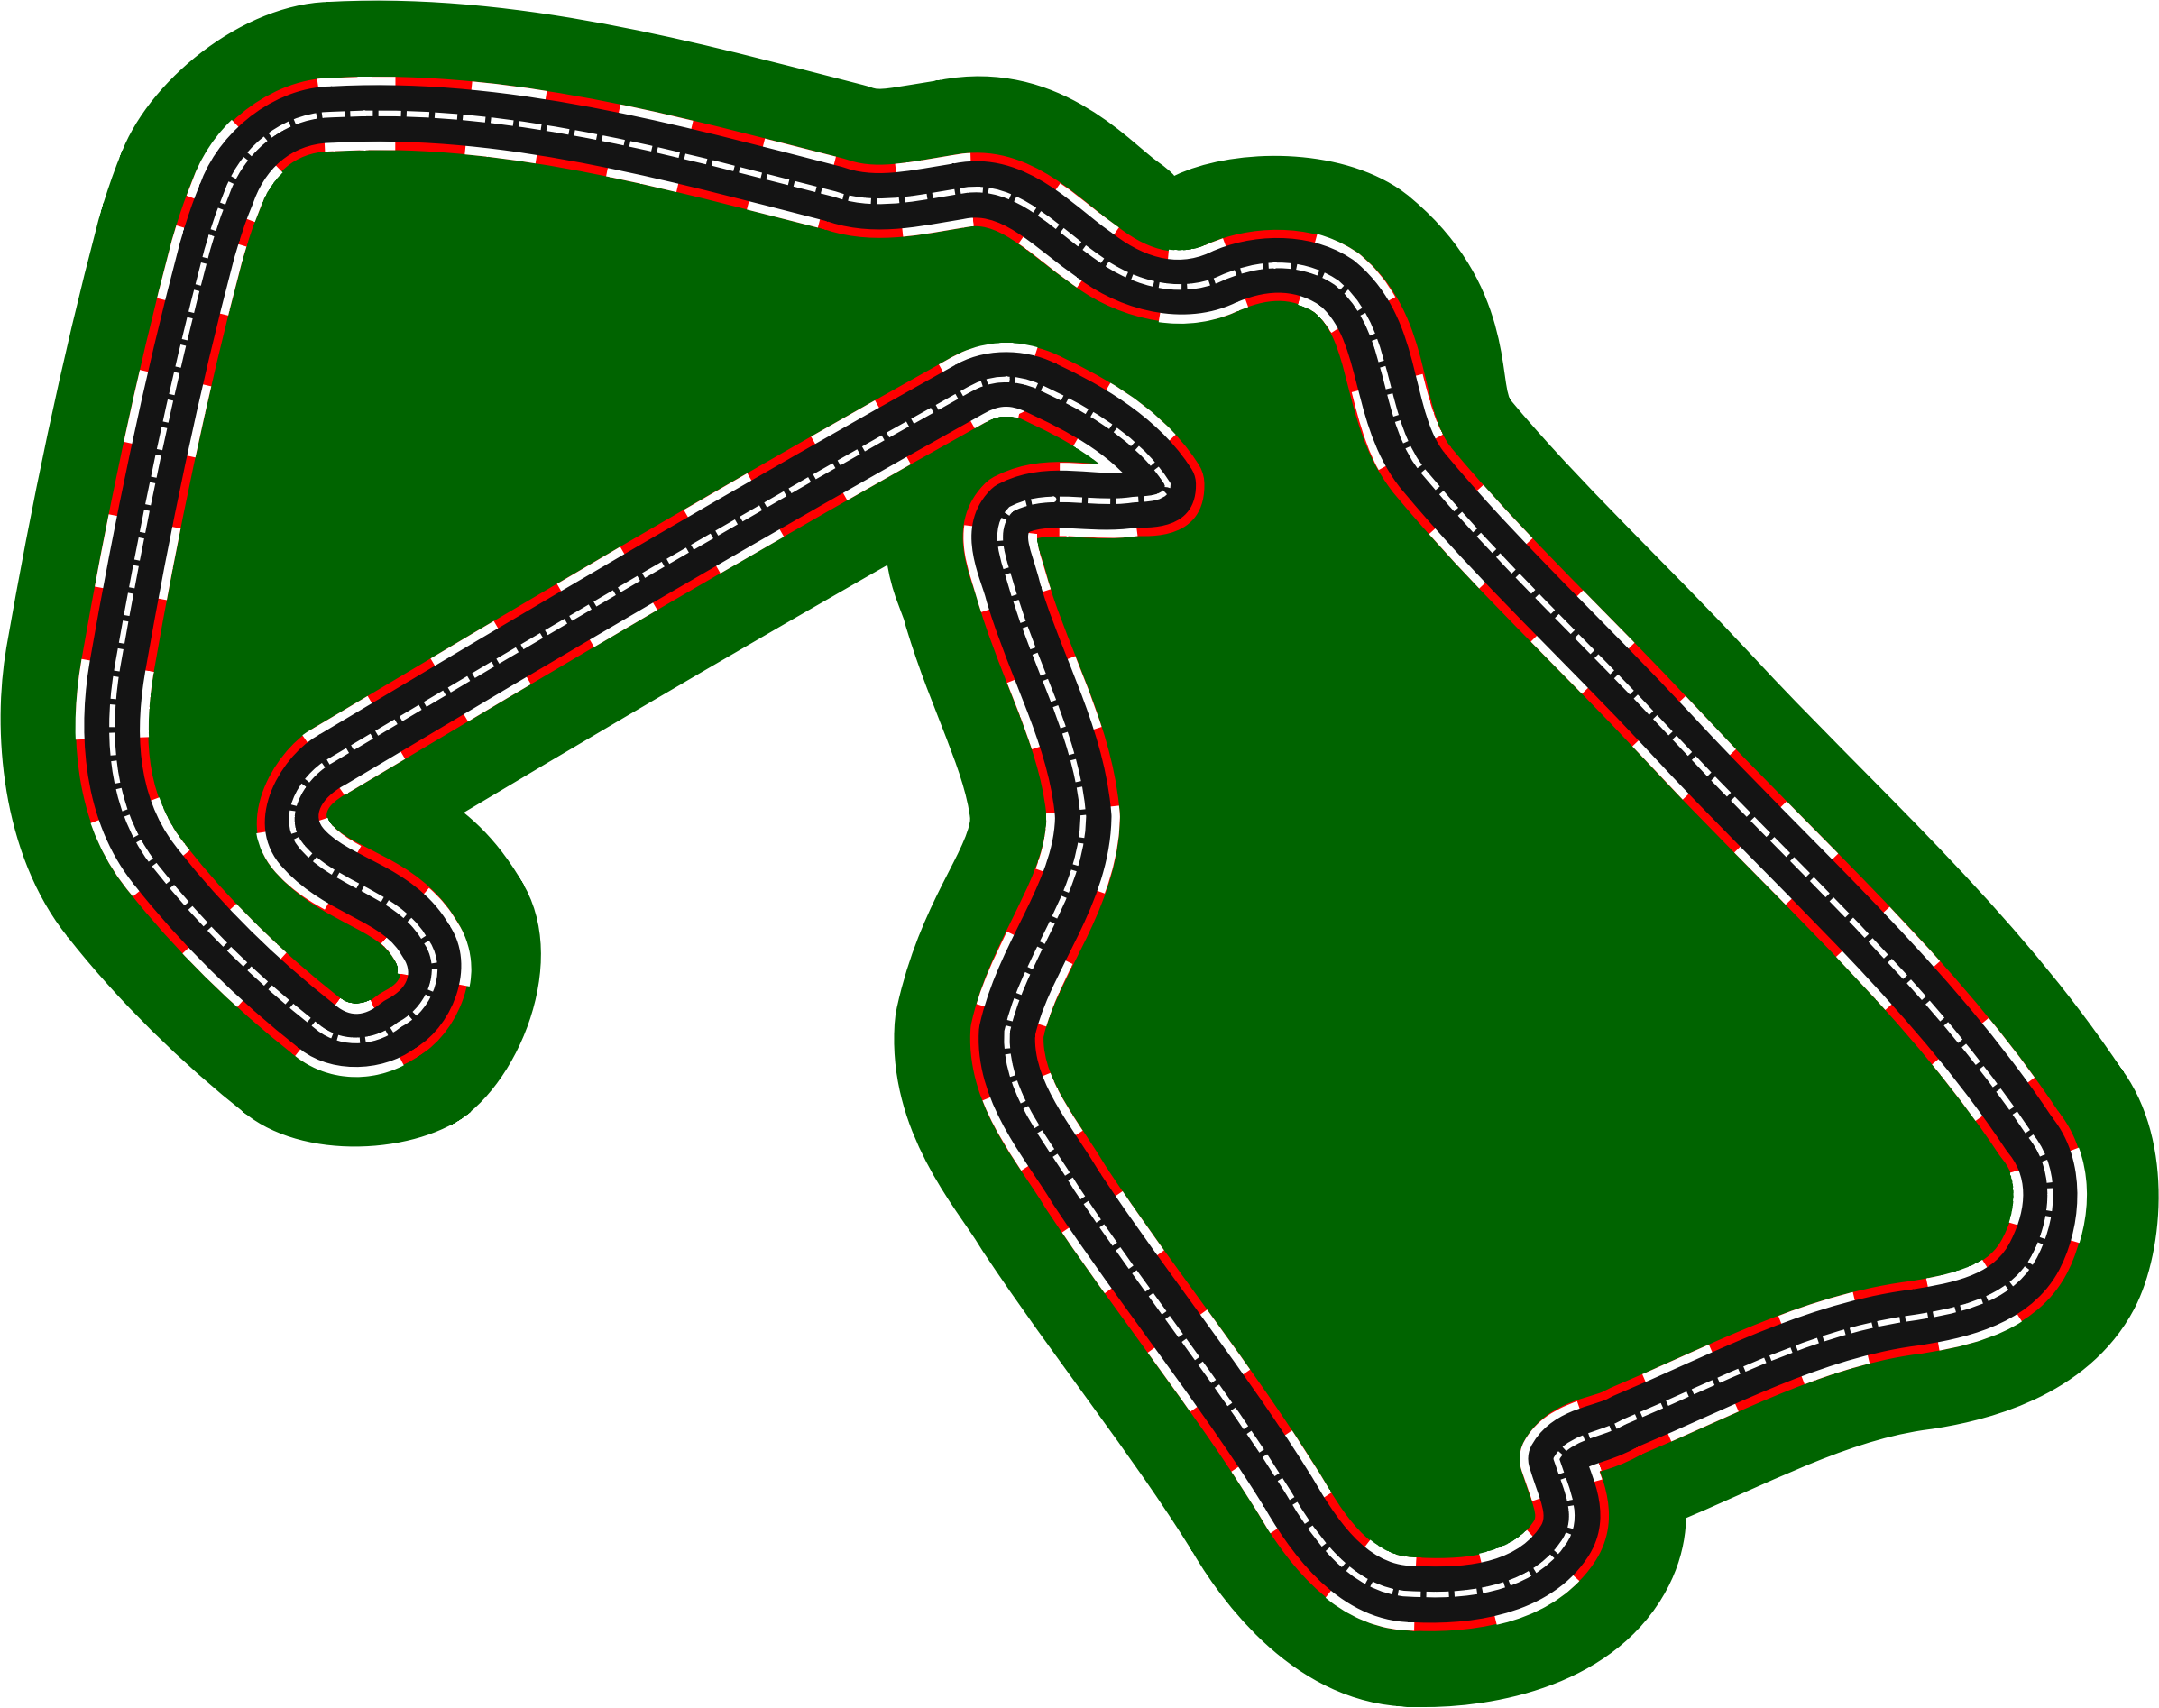 F1 circuits 2014-2018 - Silverstone (version 2) by Firkin